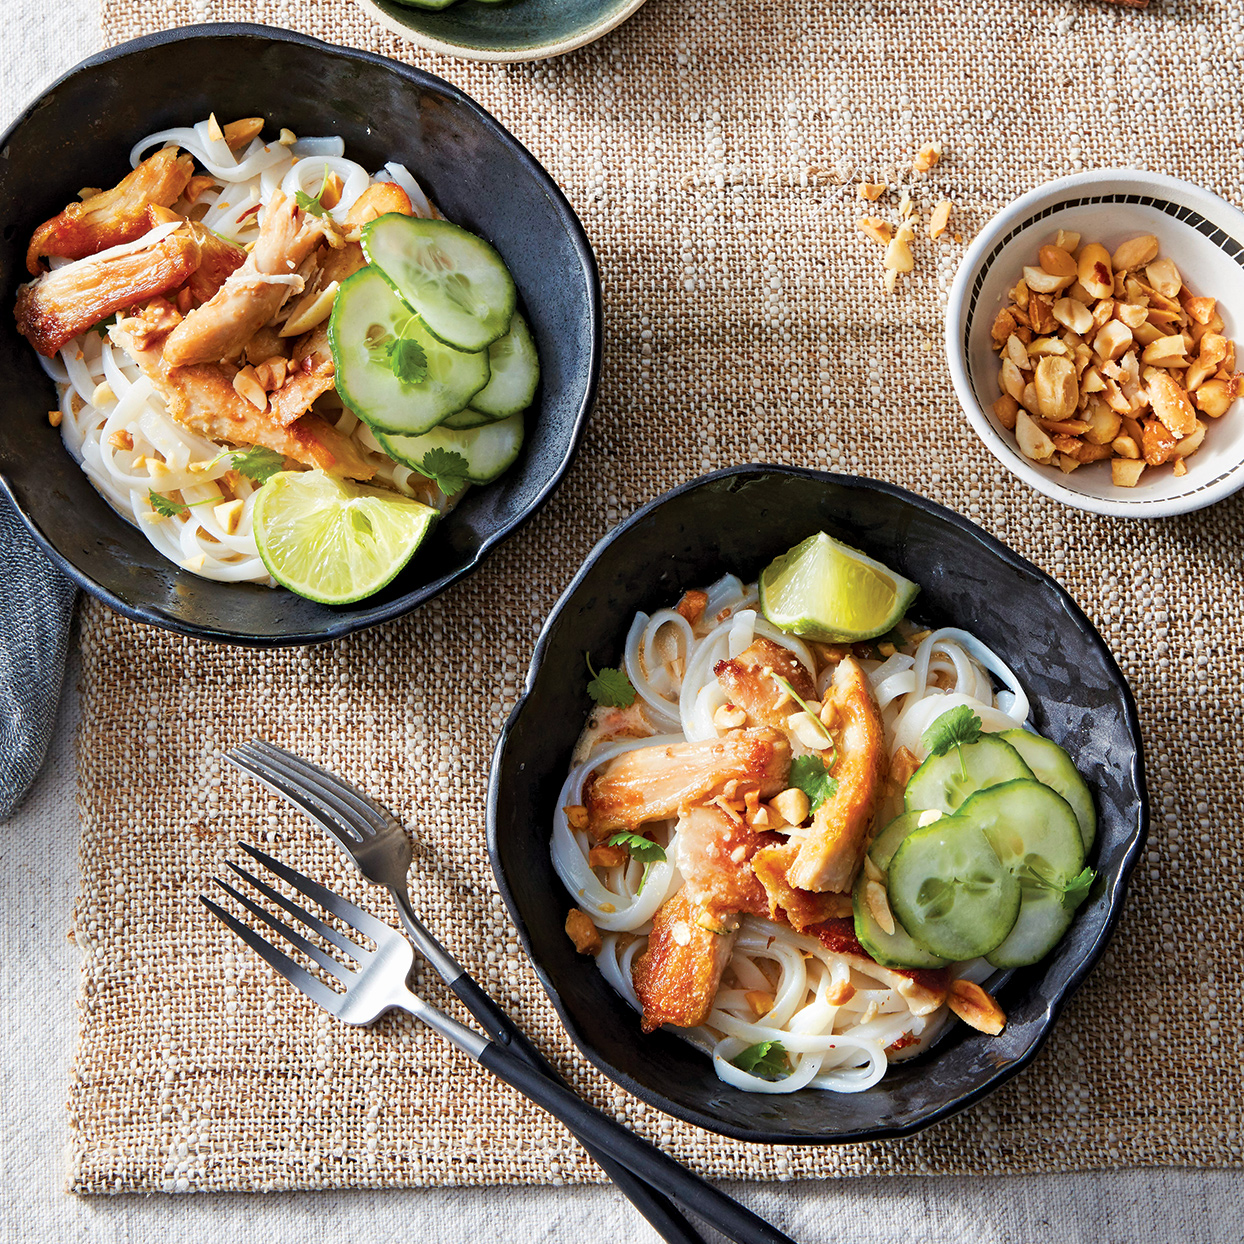 In this slow-cooker chicken recipe, minimal effort produces big flavor, making it the perfect starter recipe for anyone learning to cook their own Thai food. If you can't find wide rice noodles, any rice noodle can be substituted. For quickest day-of meal prep, make the chicken and coconut broth a day in advance and refrigerate. When ready to eat, simply reheat them, cook the noodles and serve. Source: Everyday Slow Cooker